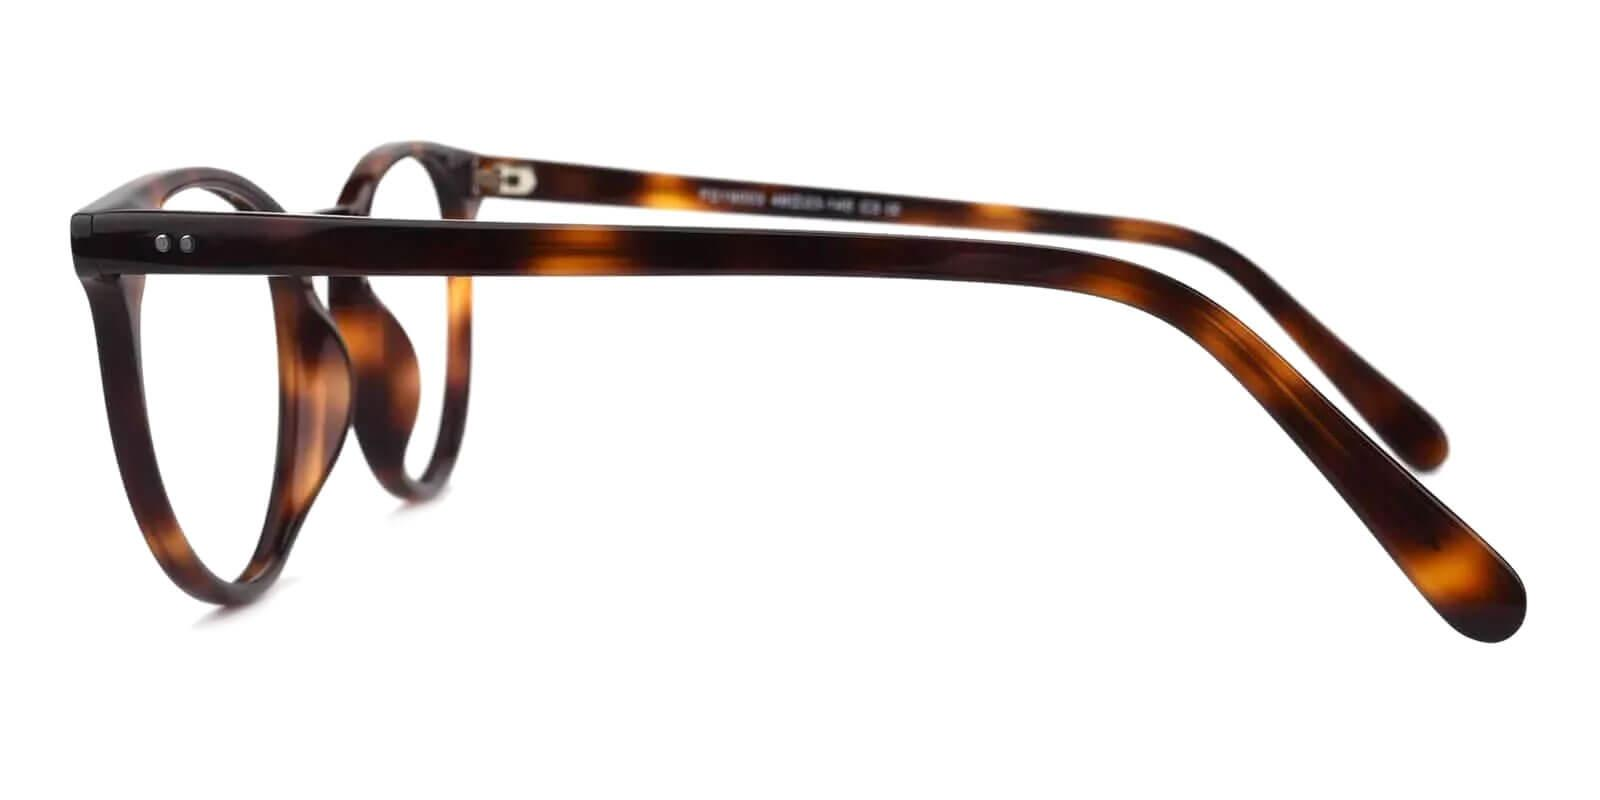 Mercury Tortoise Acetate Eyeglasses , UniversalBridgeFit Frames from ABBE Glasses